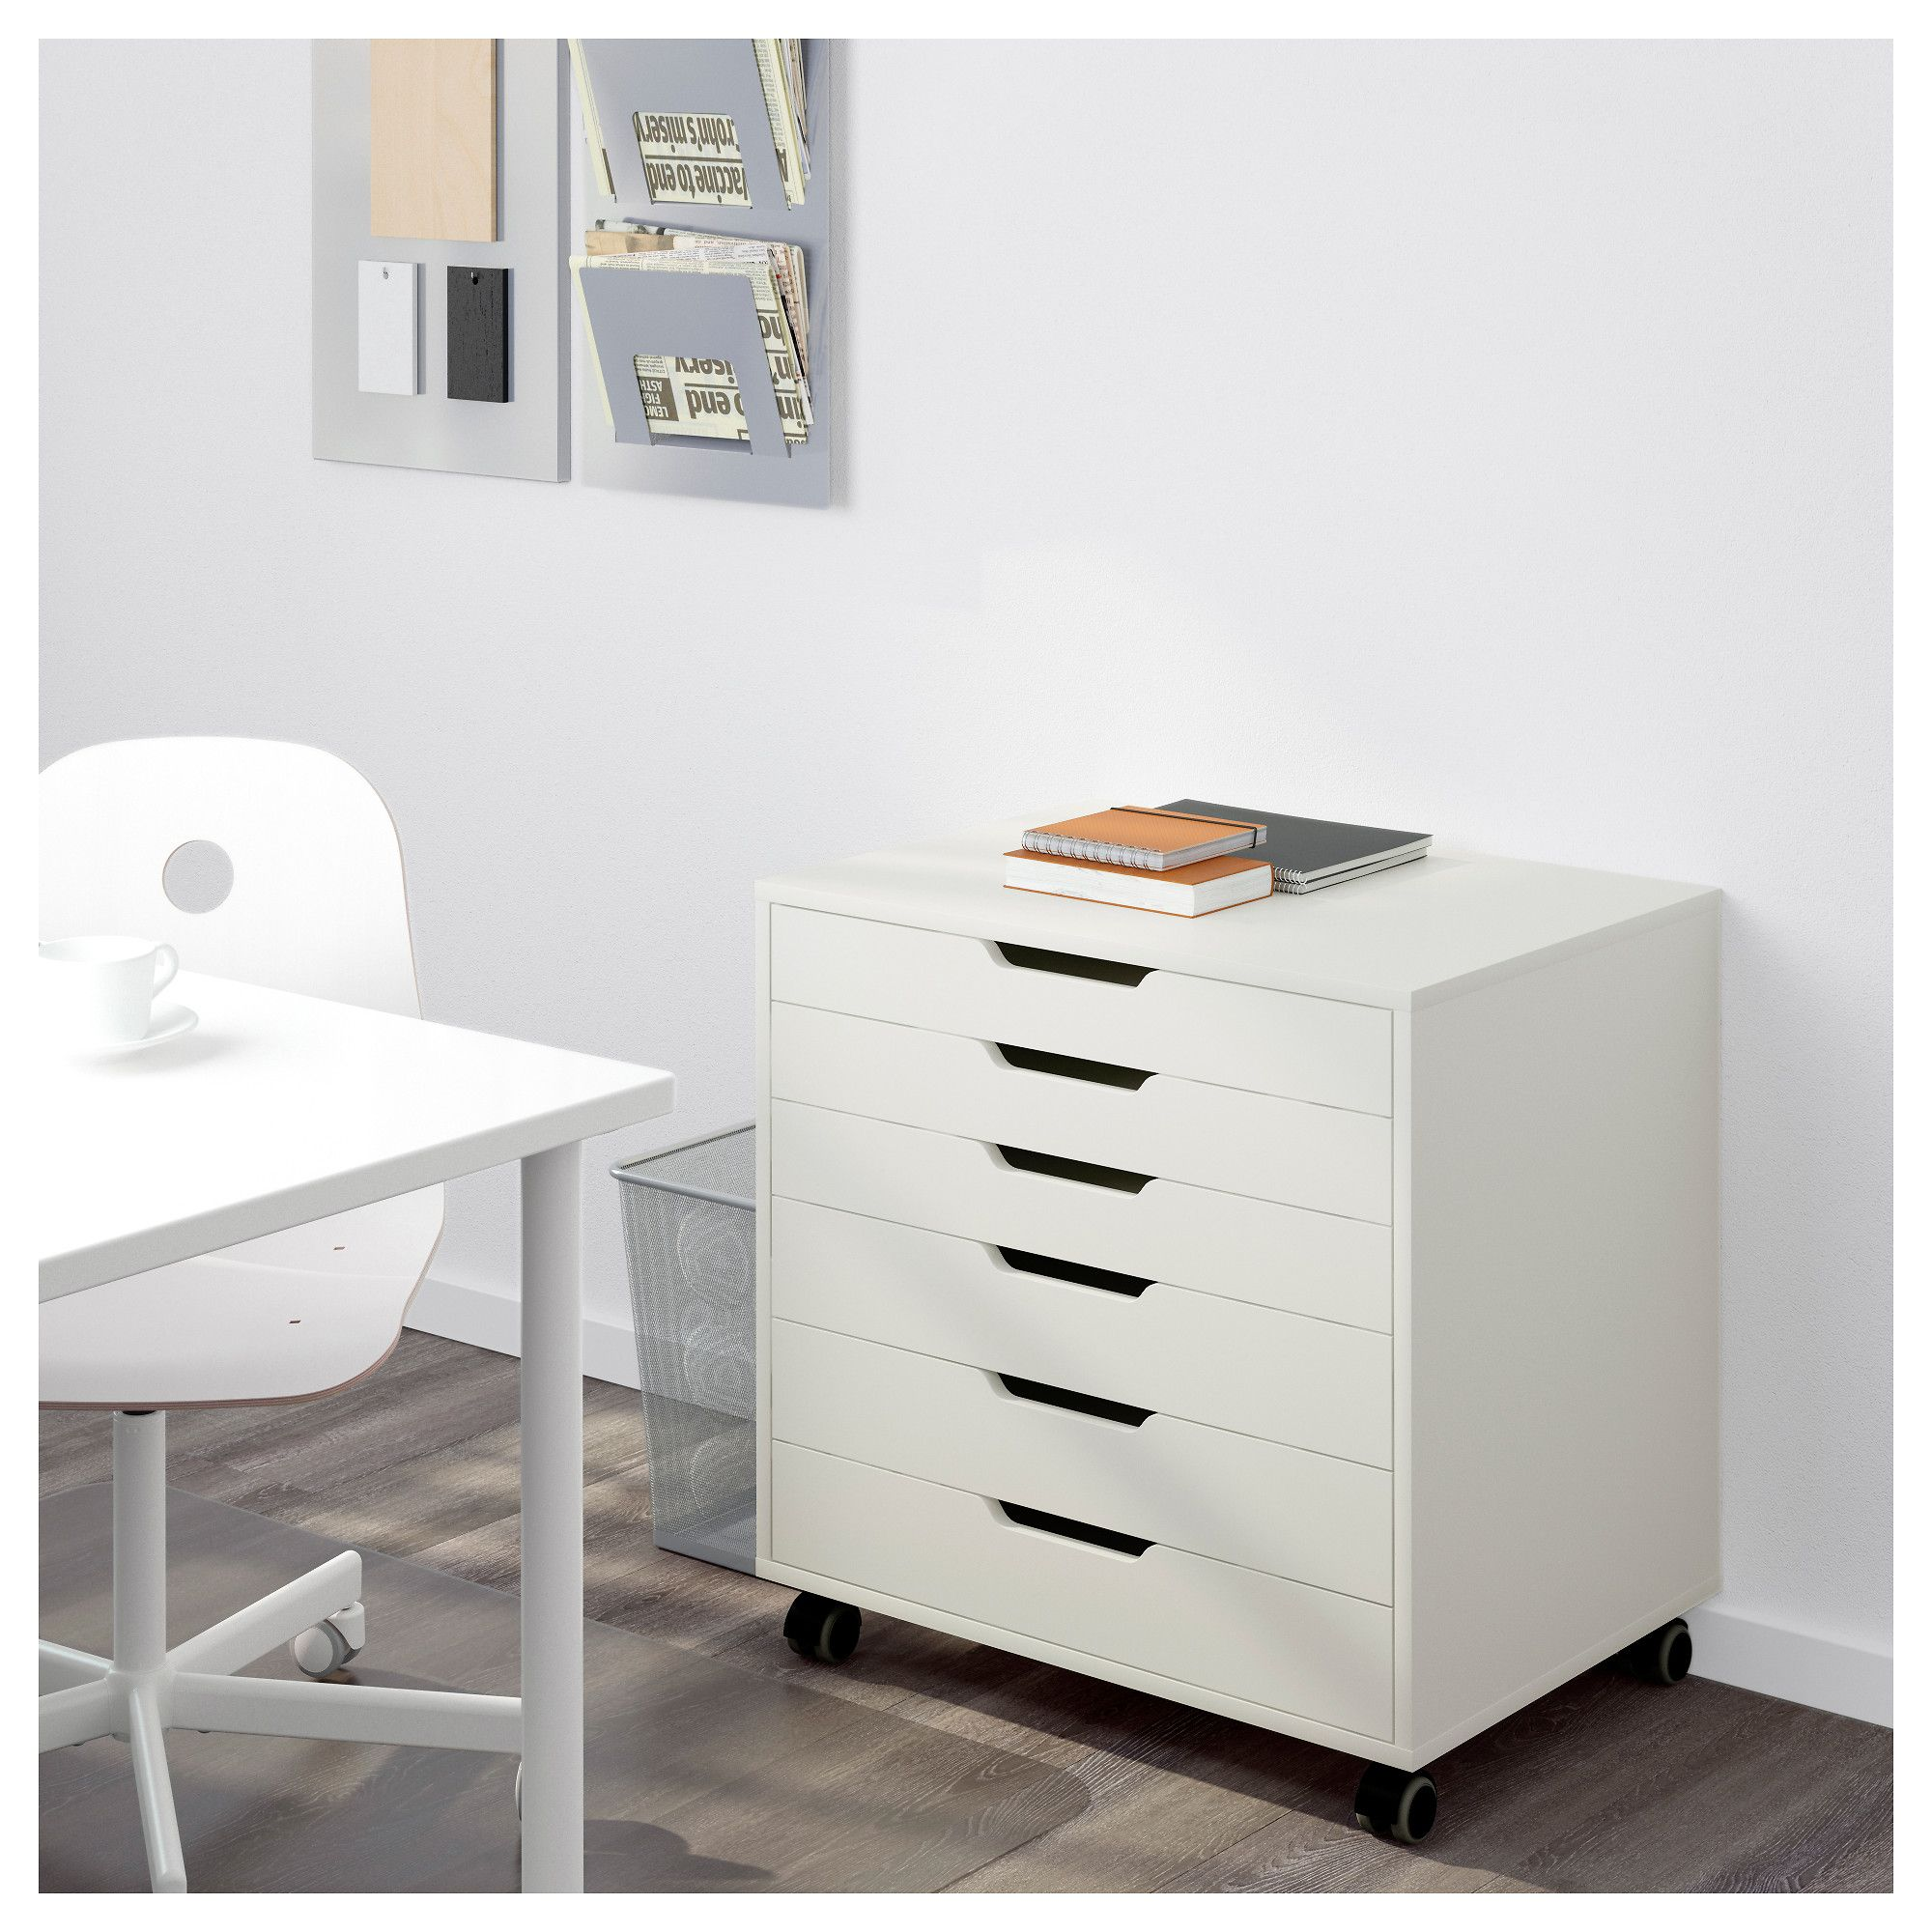 Ikea Alex Drawer Unit On Castors Stops Prevent The From Being Pulled Out Too Far